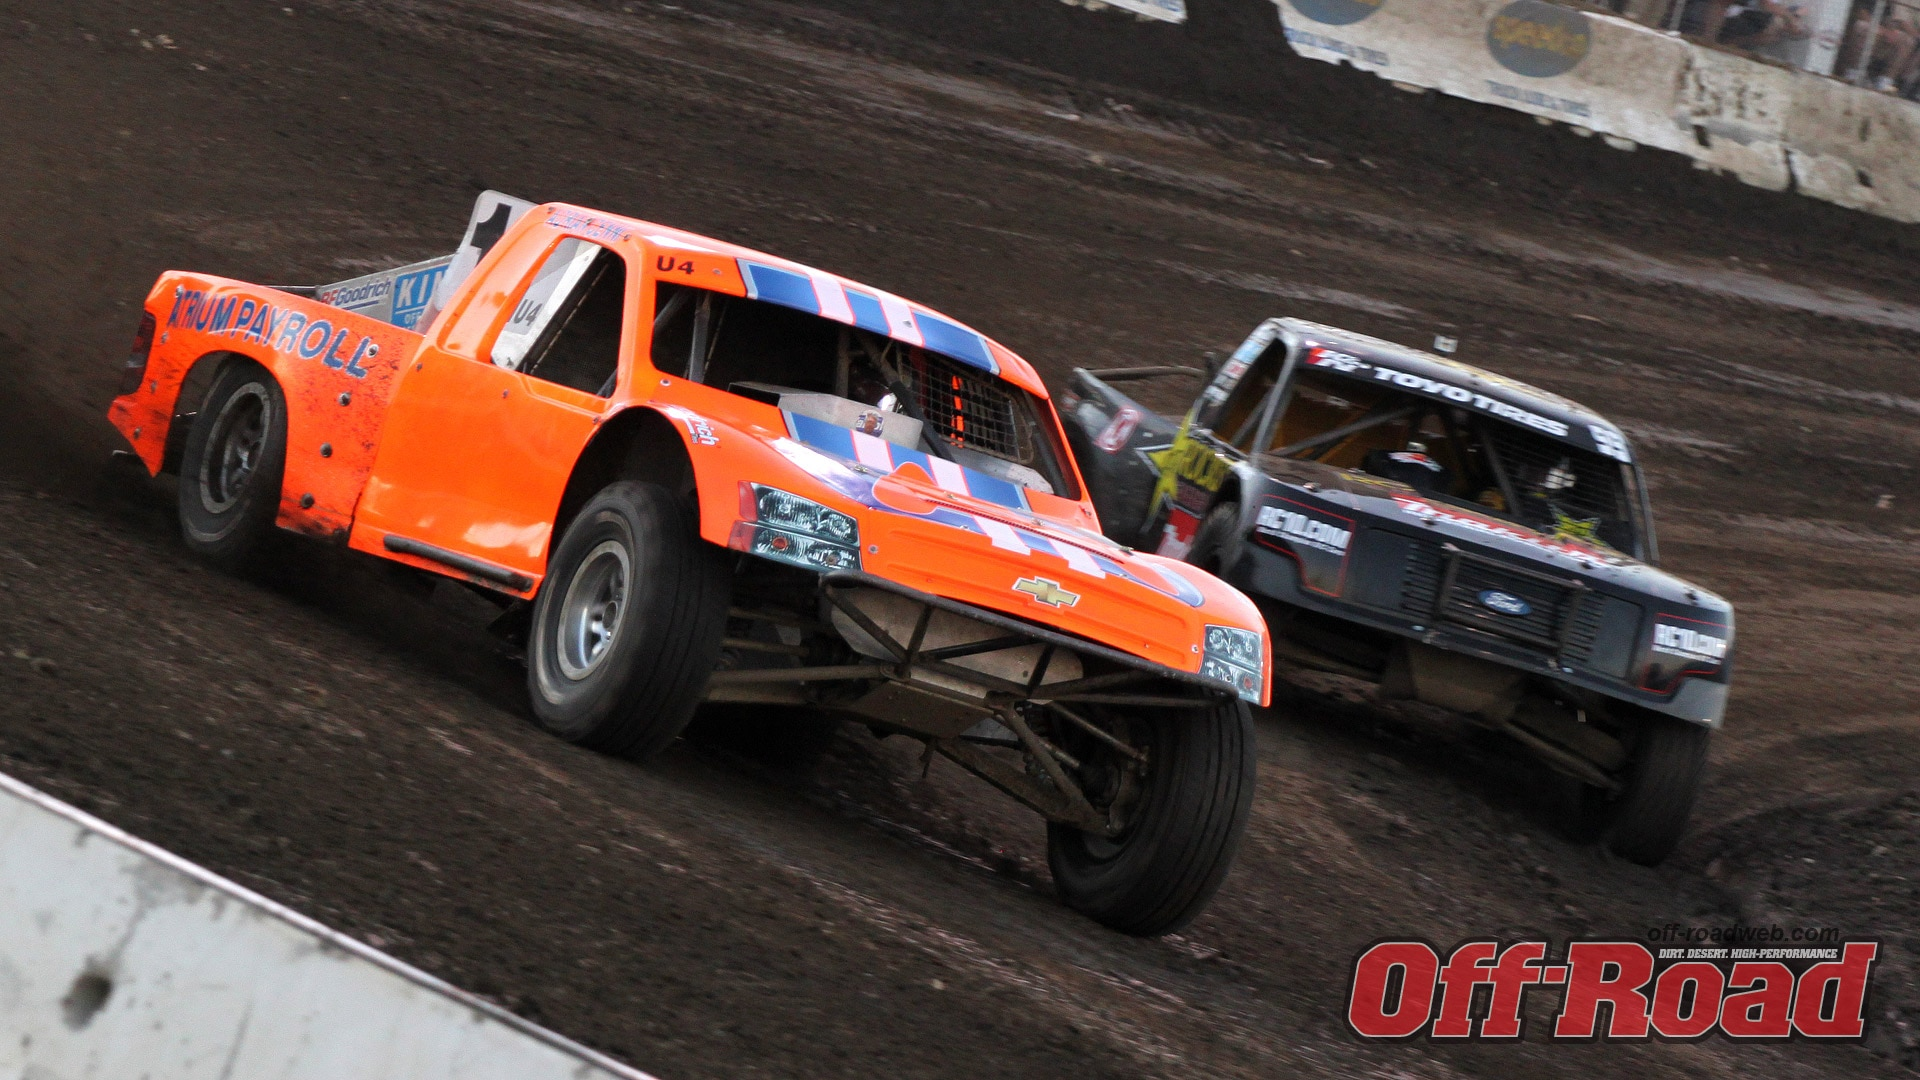 081010or 6750+lucas oil off road racing series+round 9 pro 4 unlimited